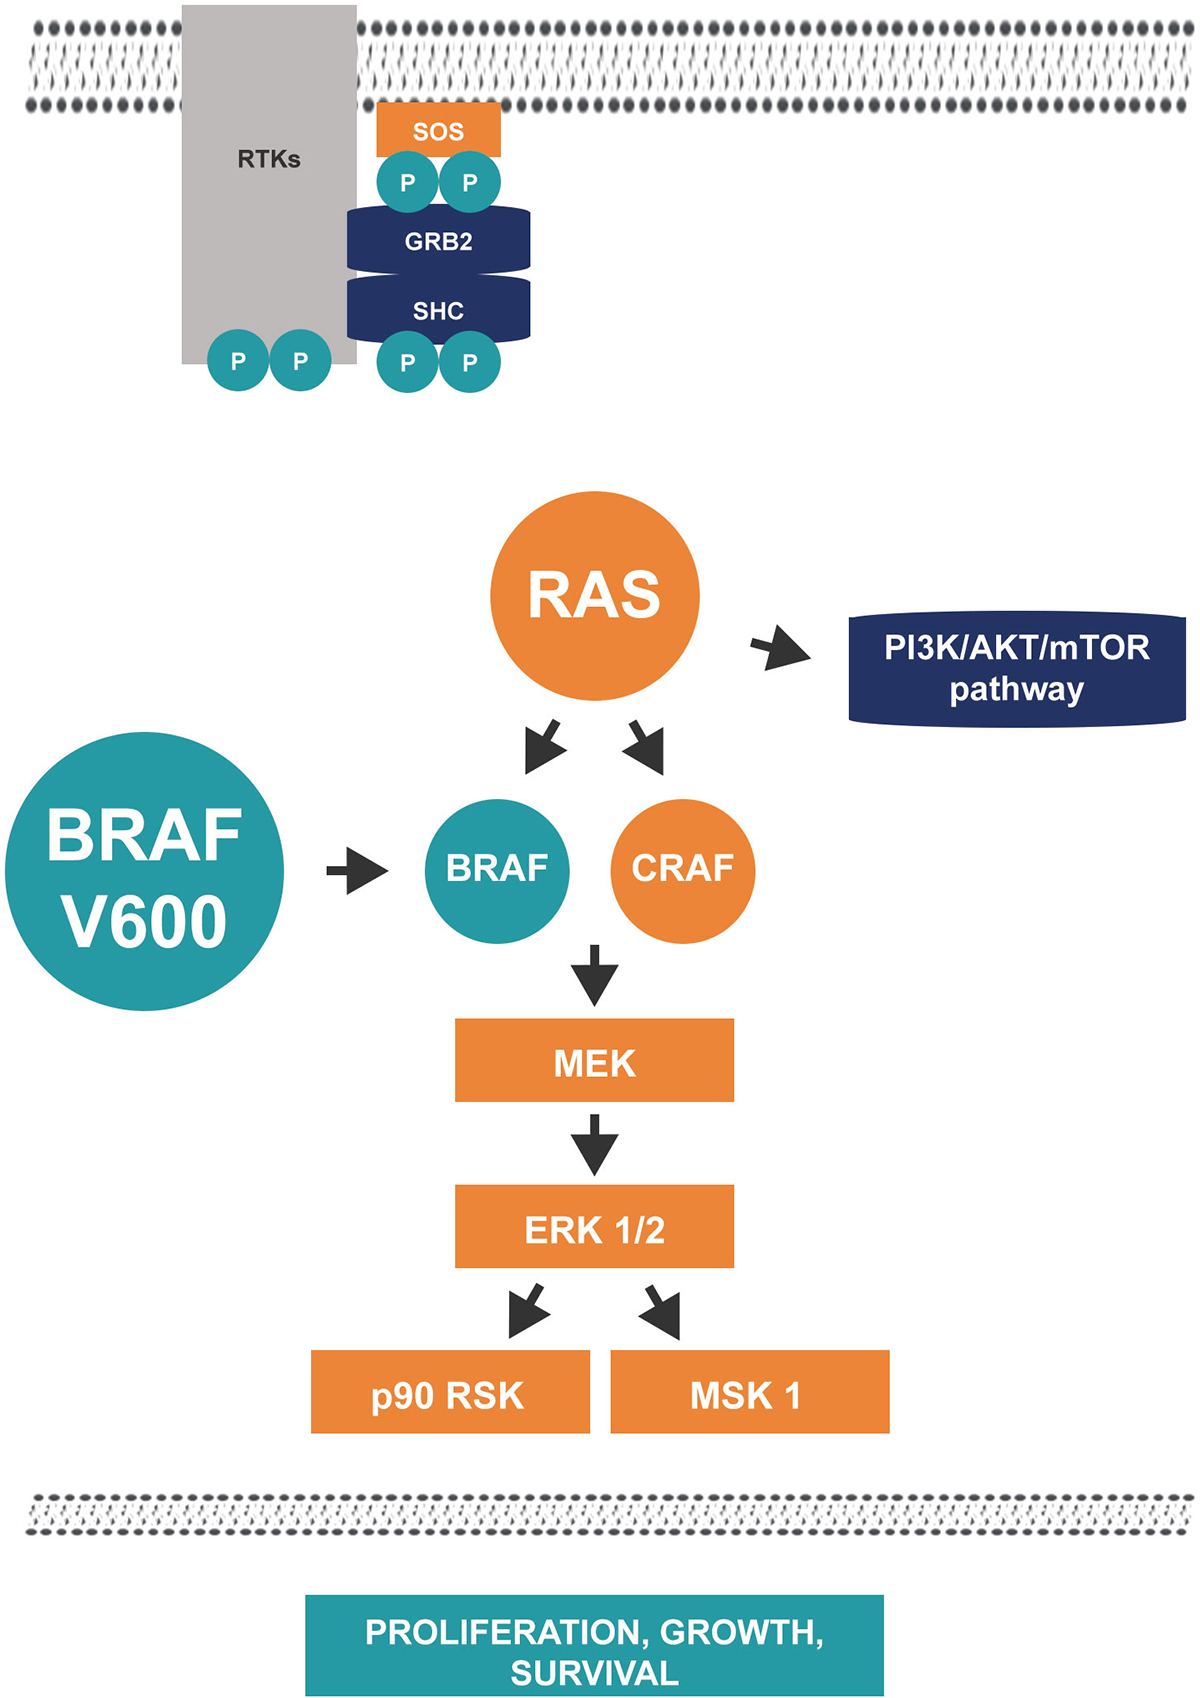 An image to represent the role of BRAF in the RAS/RAF/MEK/ERK signalling pathway